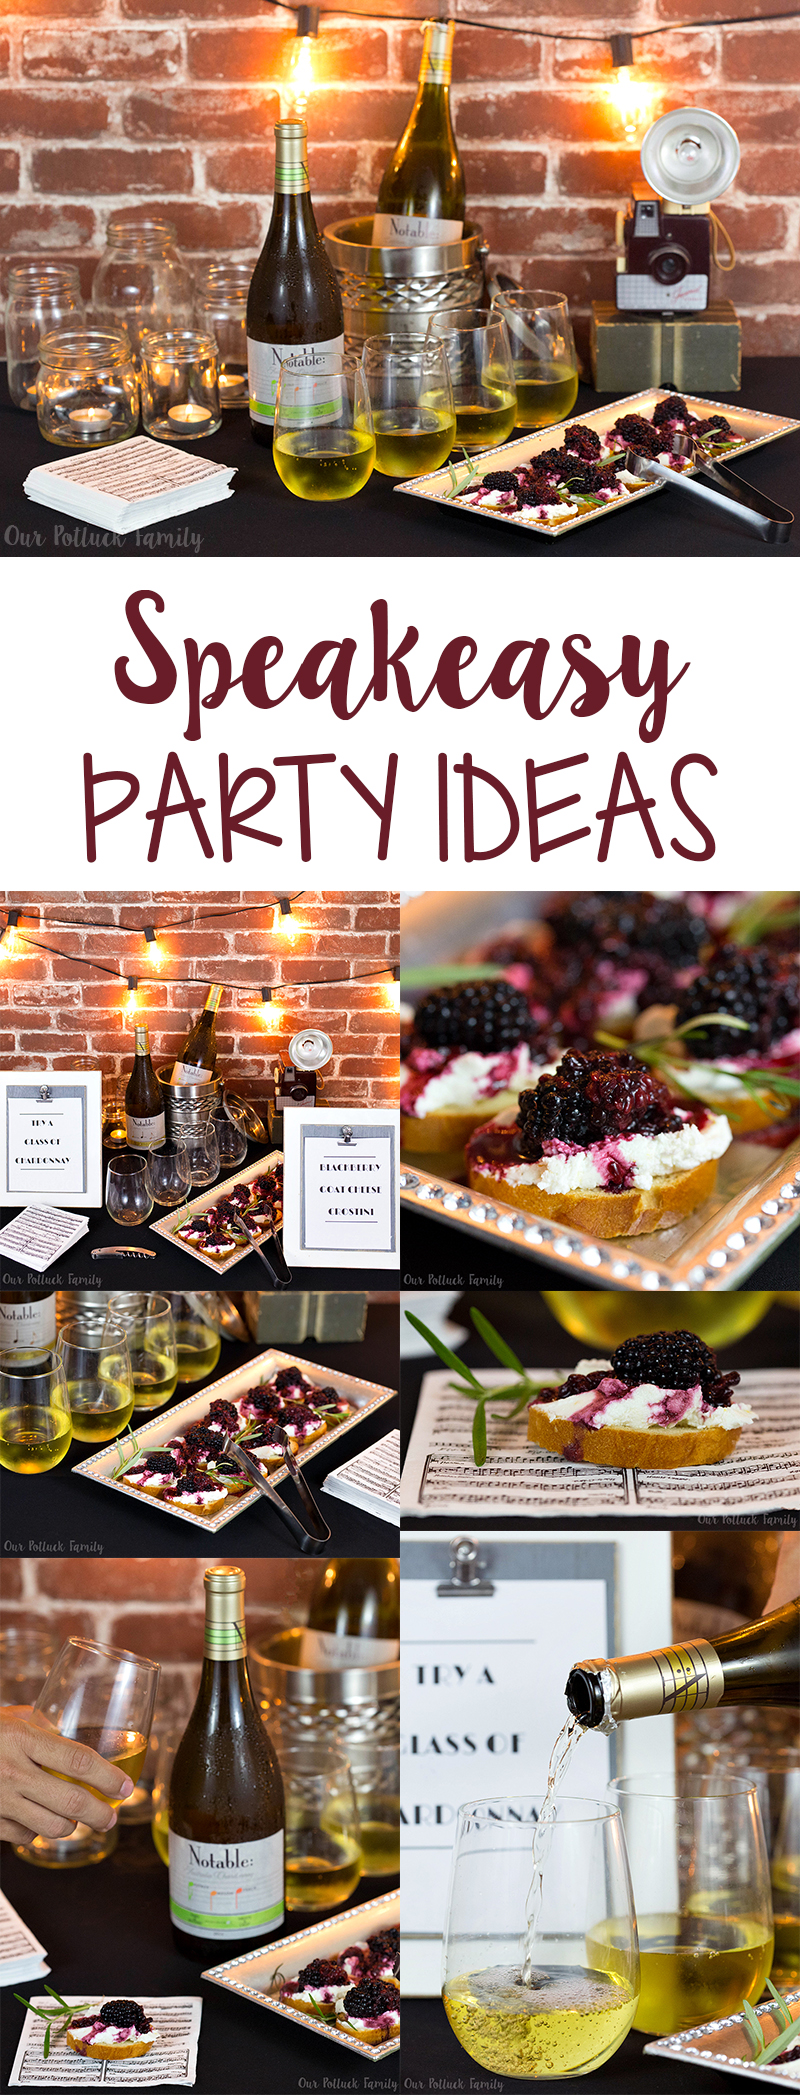 Speakeasy Party Ideas Our Potluck Family